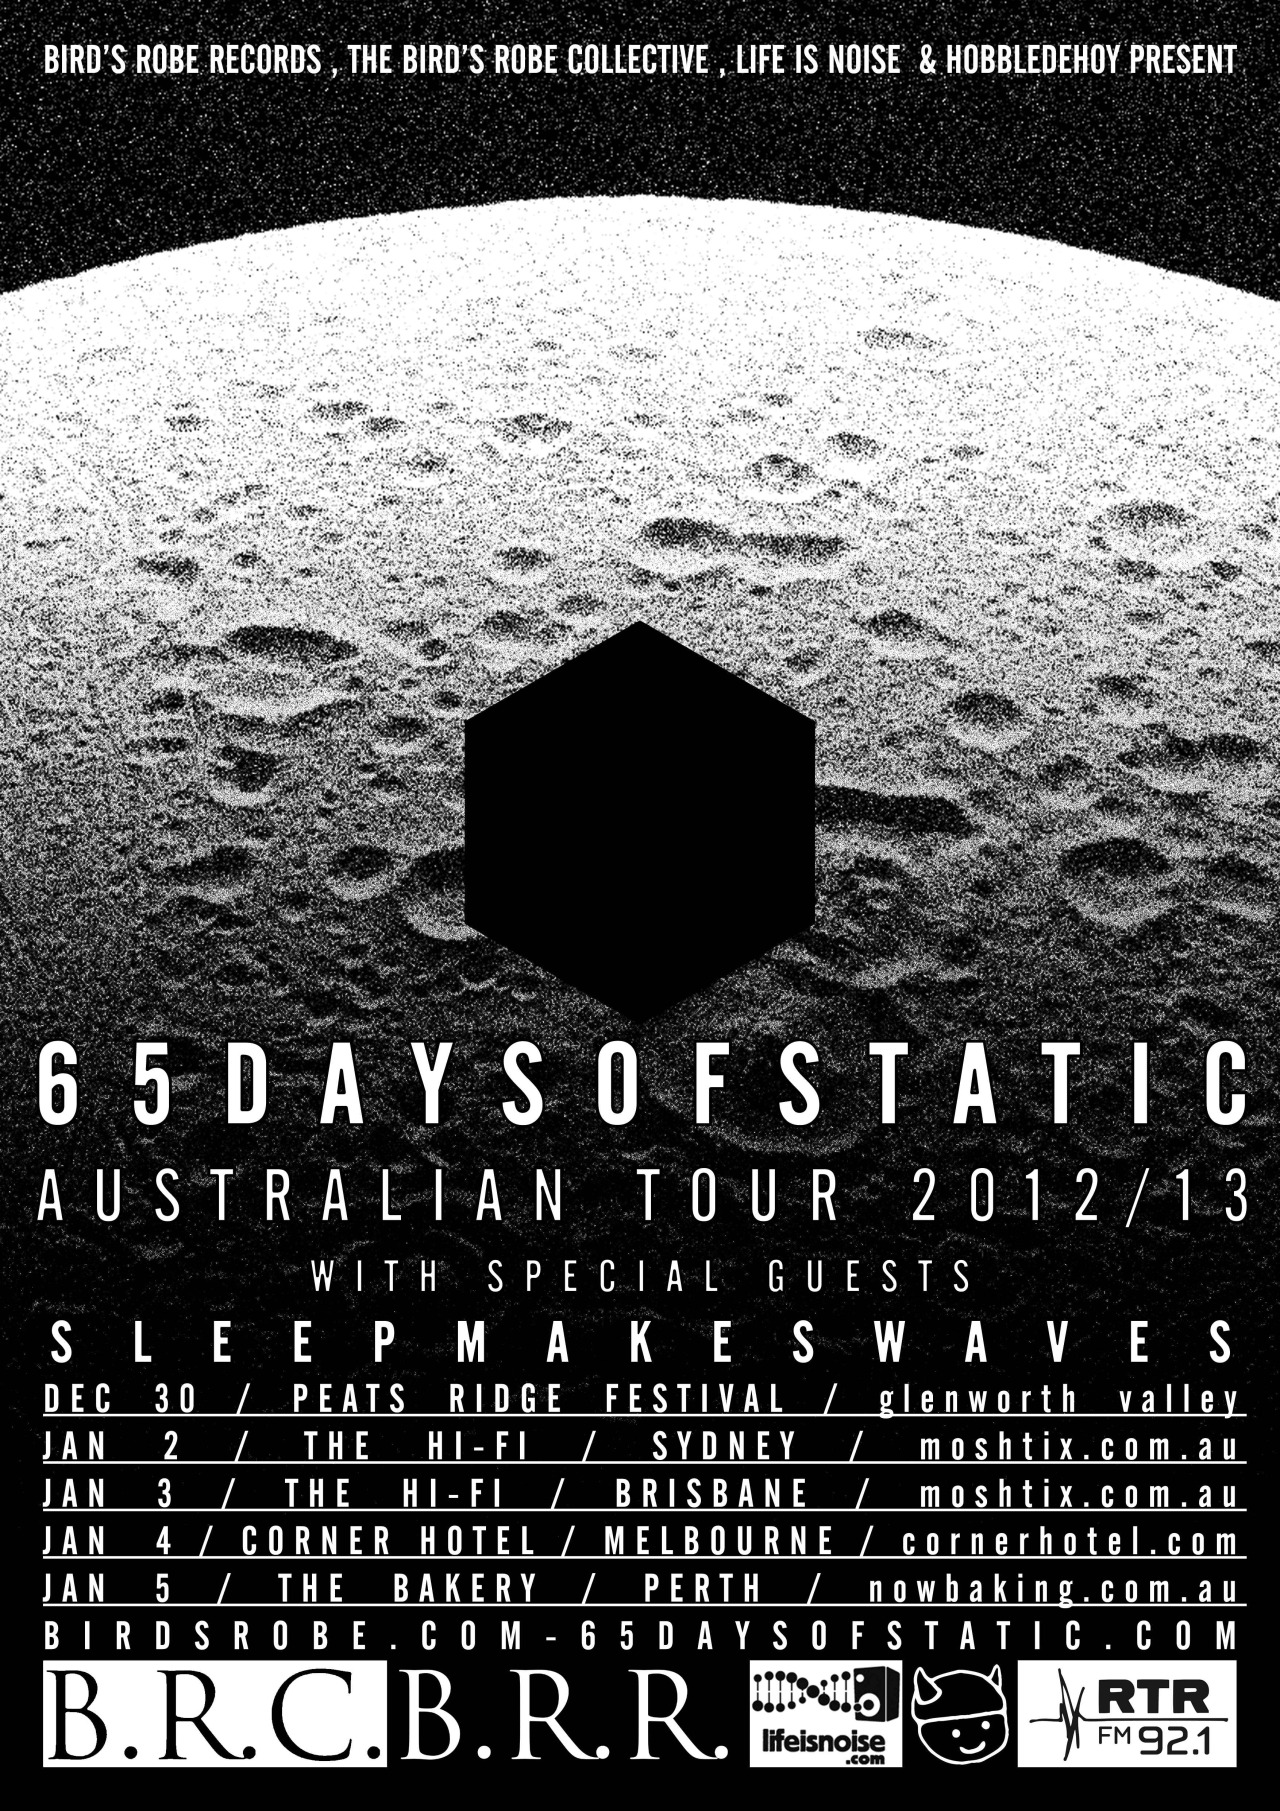 I remember being introduced to 65 Days Of Static about a million years ago, liking them at the time and then forgetting about them. But now they are touring and it jogged my memory and I'm a bit excited. Head along to one of the dates if you get the chance!